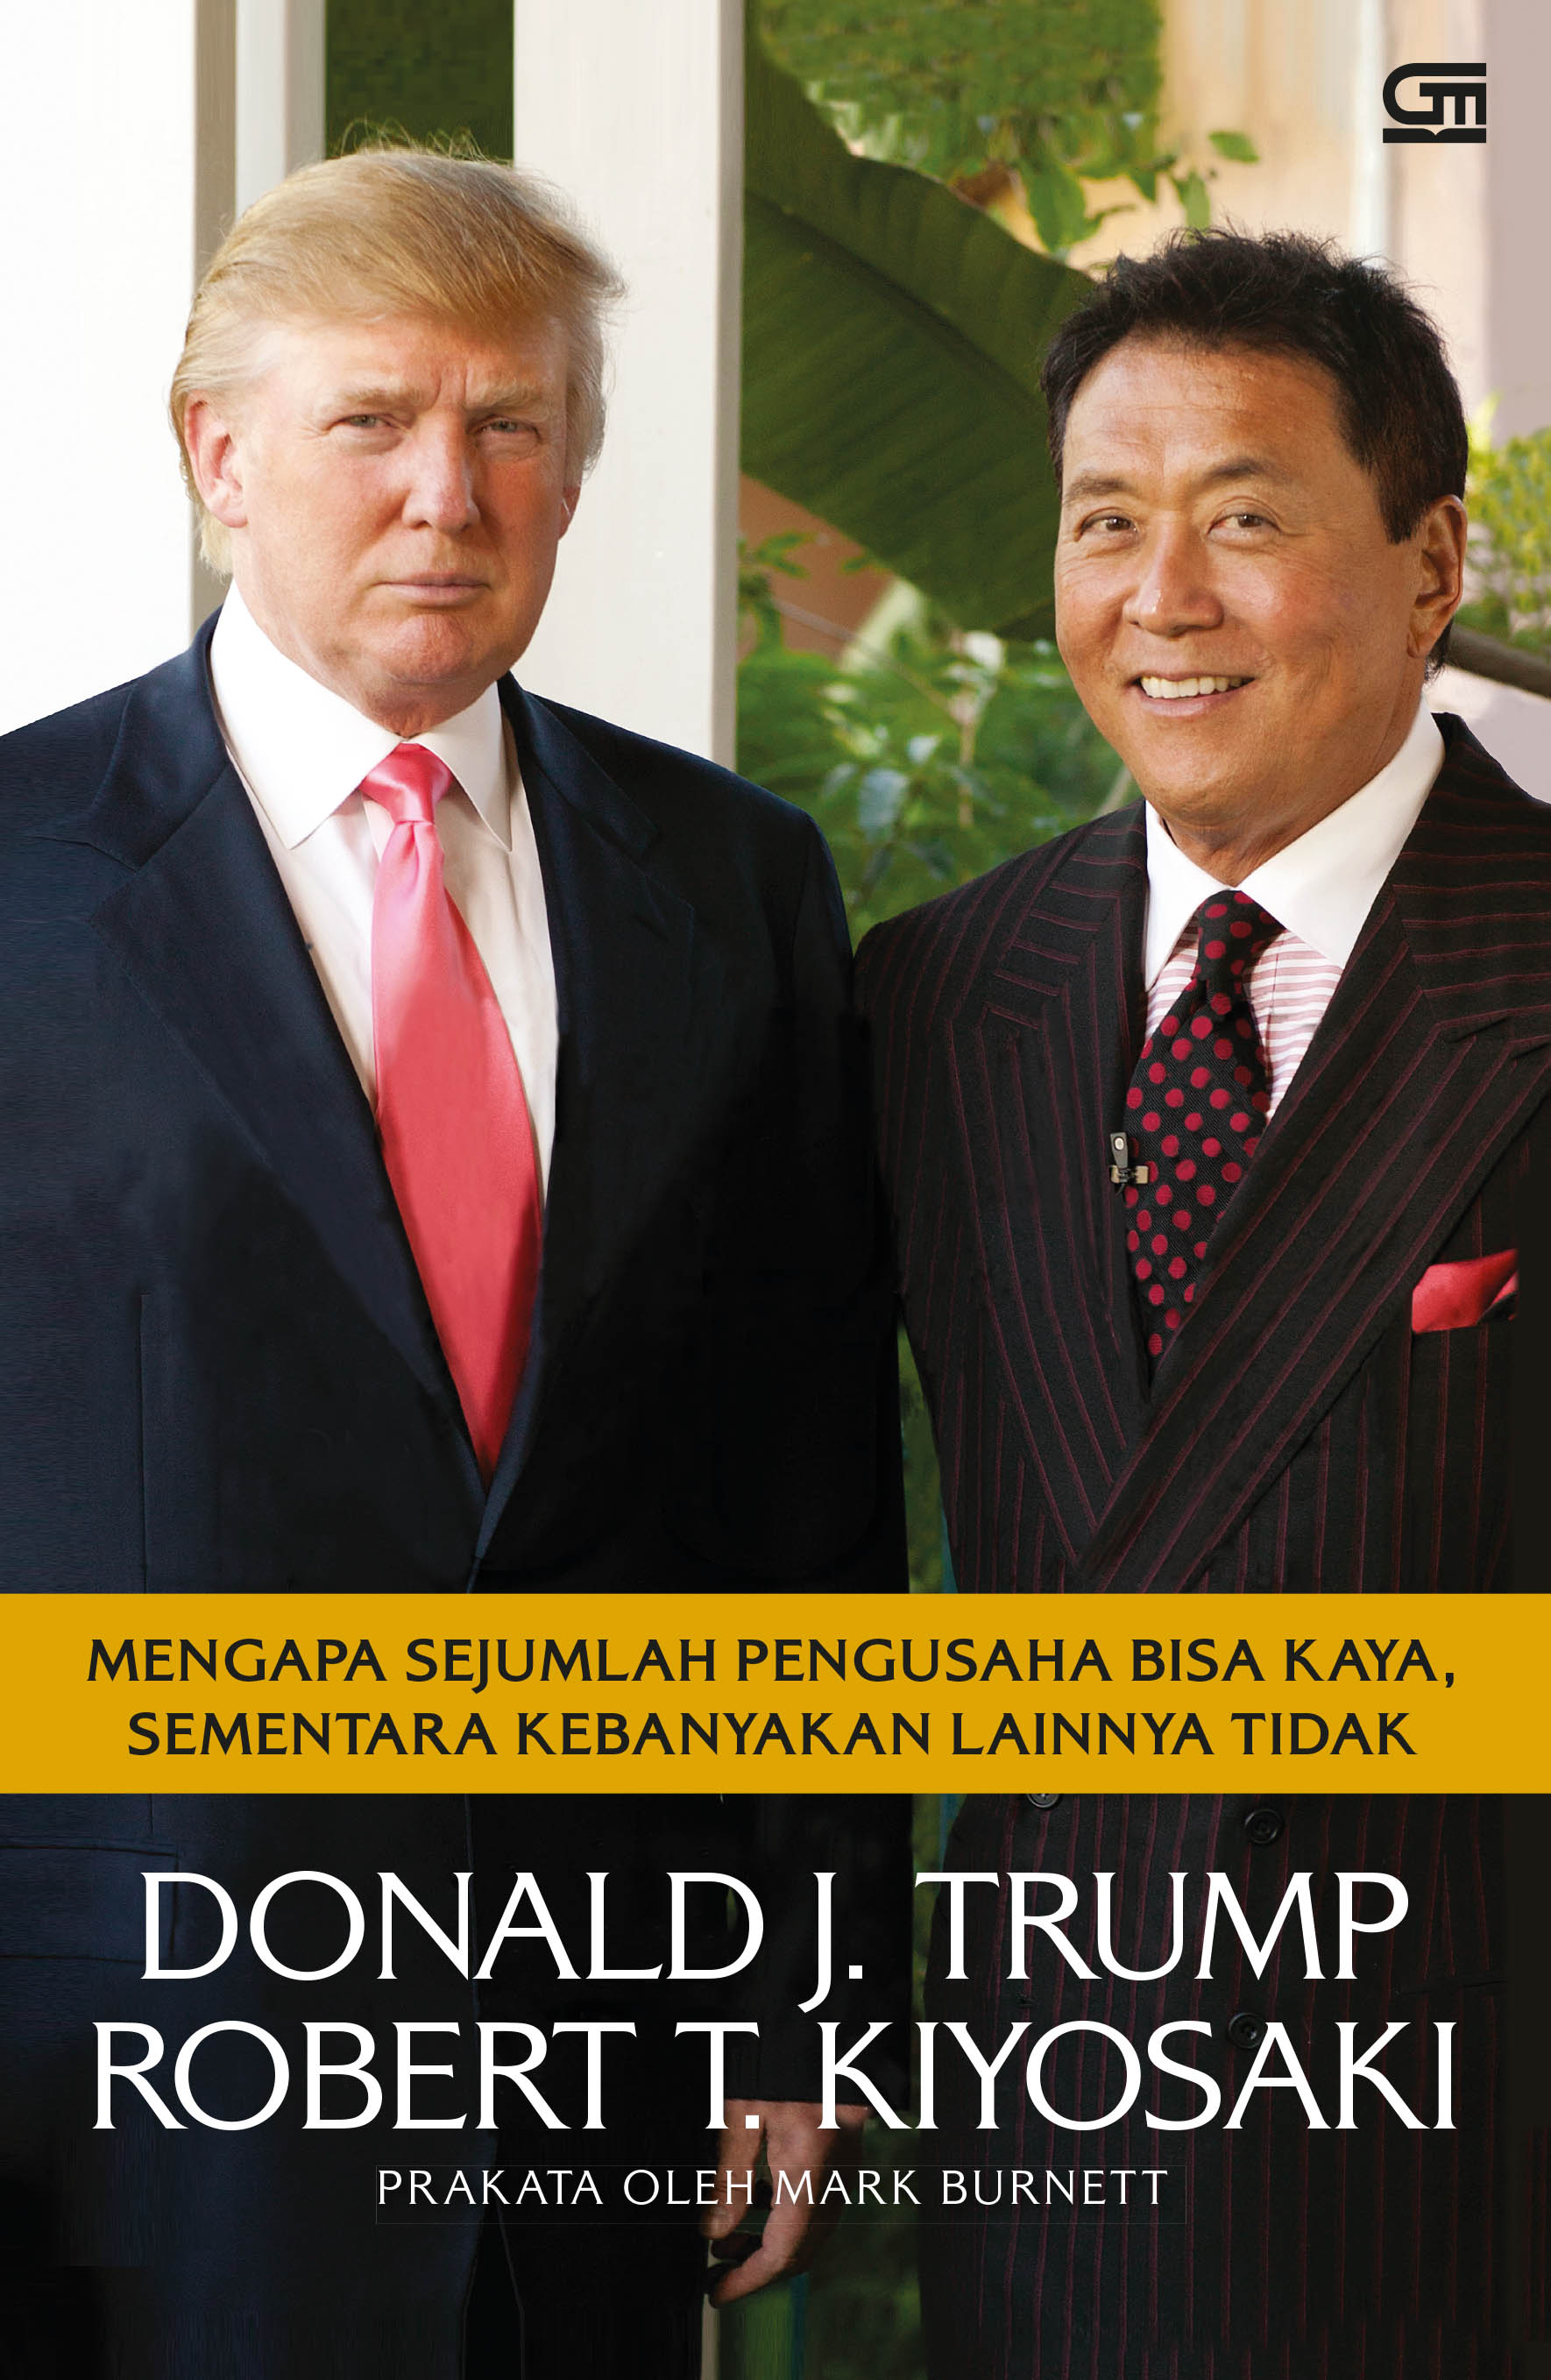 Midas Touch (Ed. Revisi)